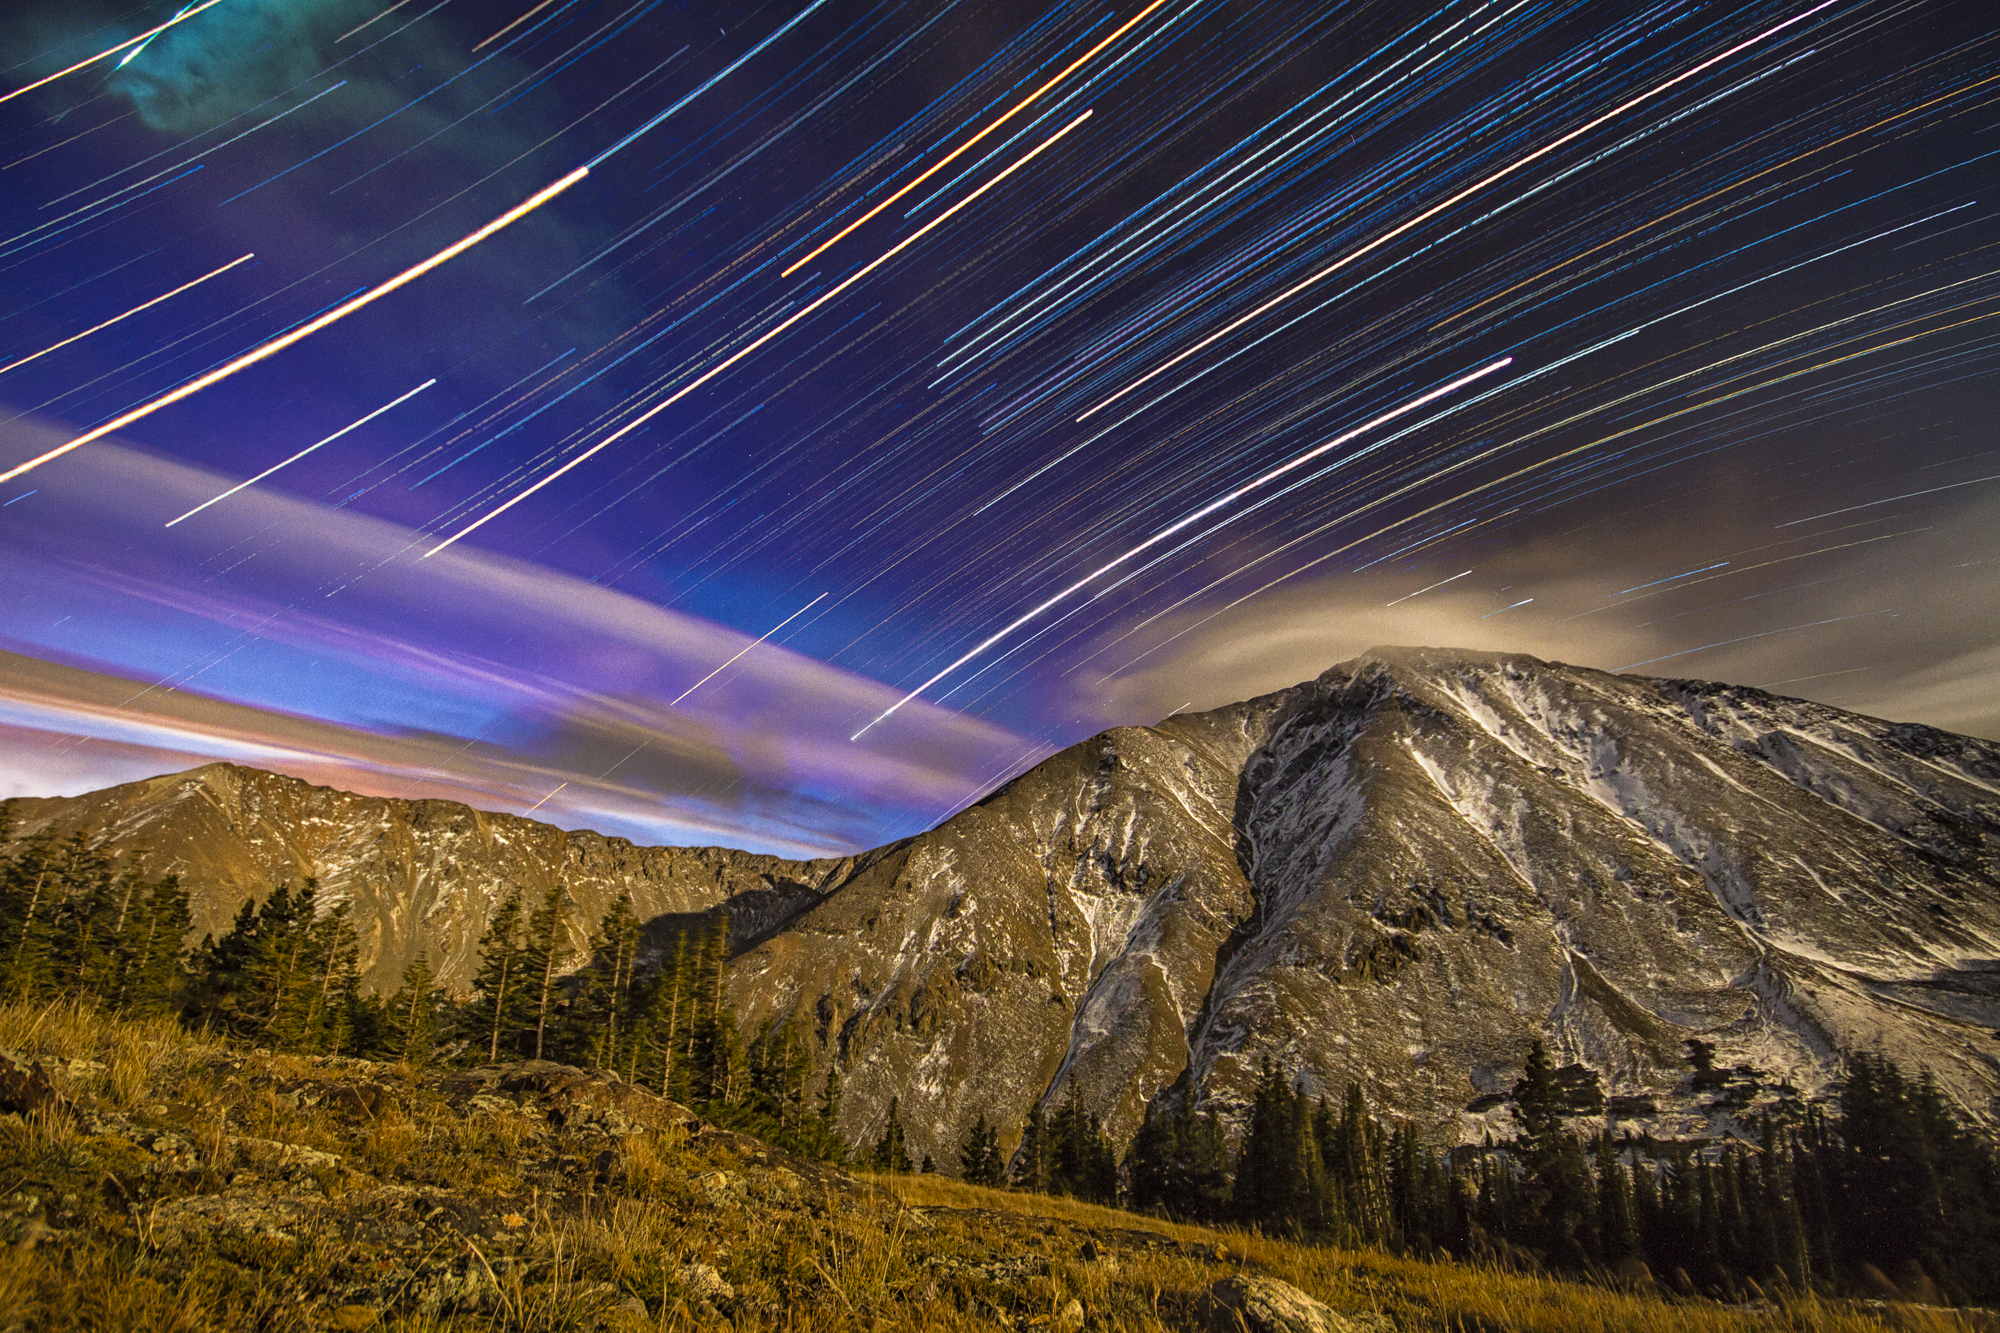 Torreys startrails with meteorite